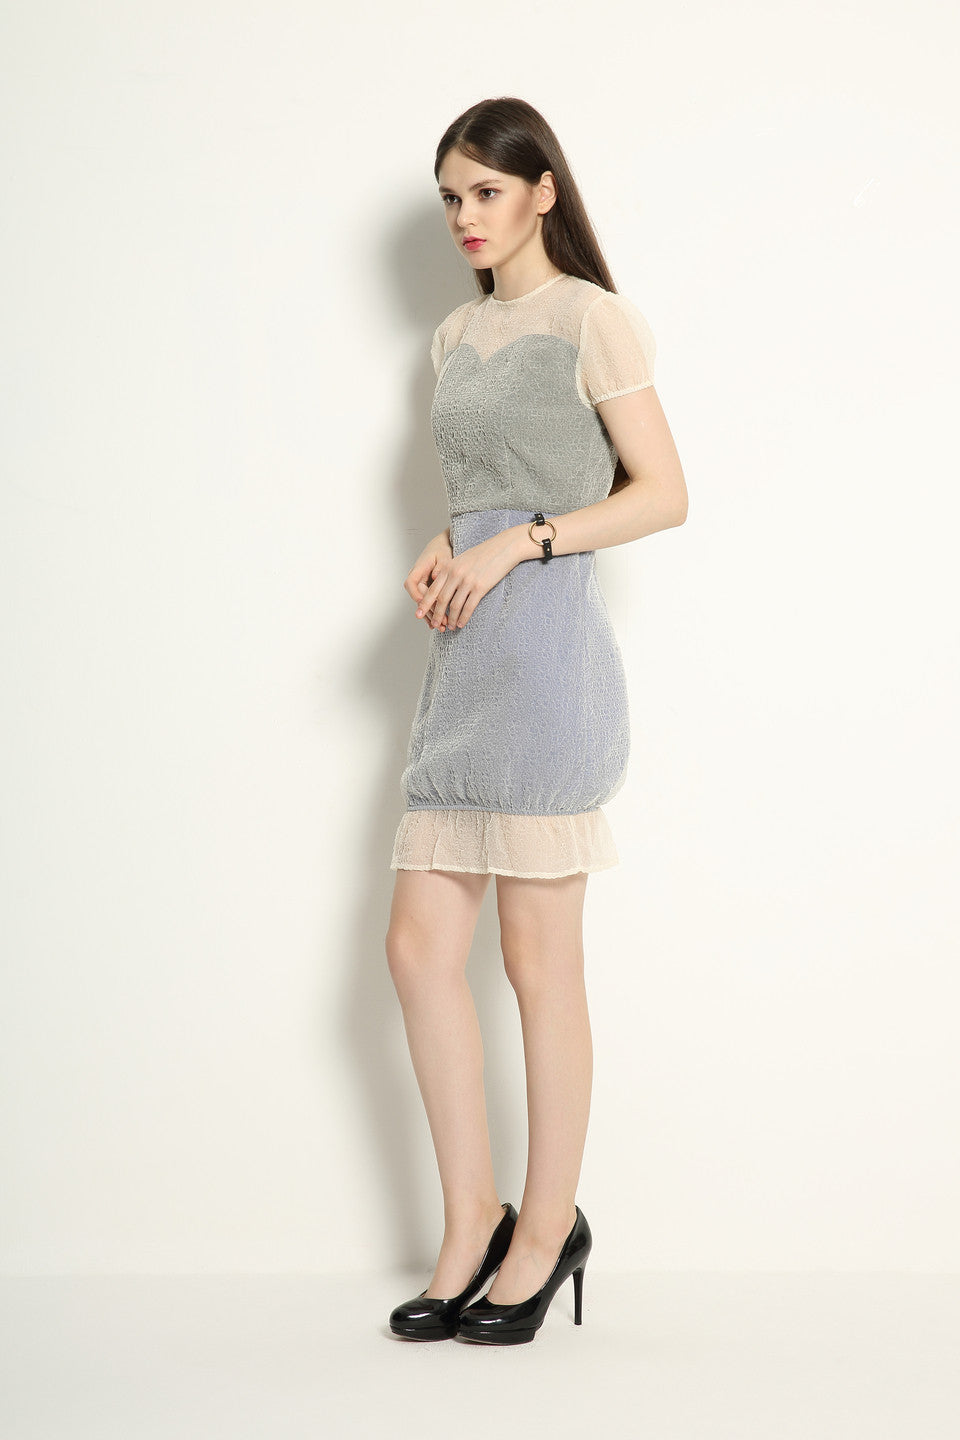 Organza Double Layered Contrast Dress - GlanceZ   - 4